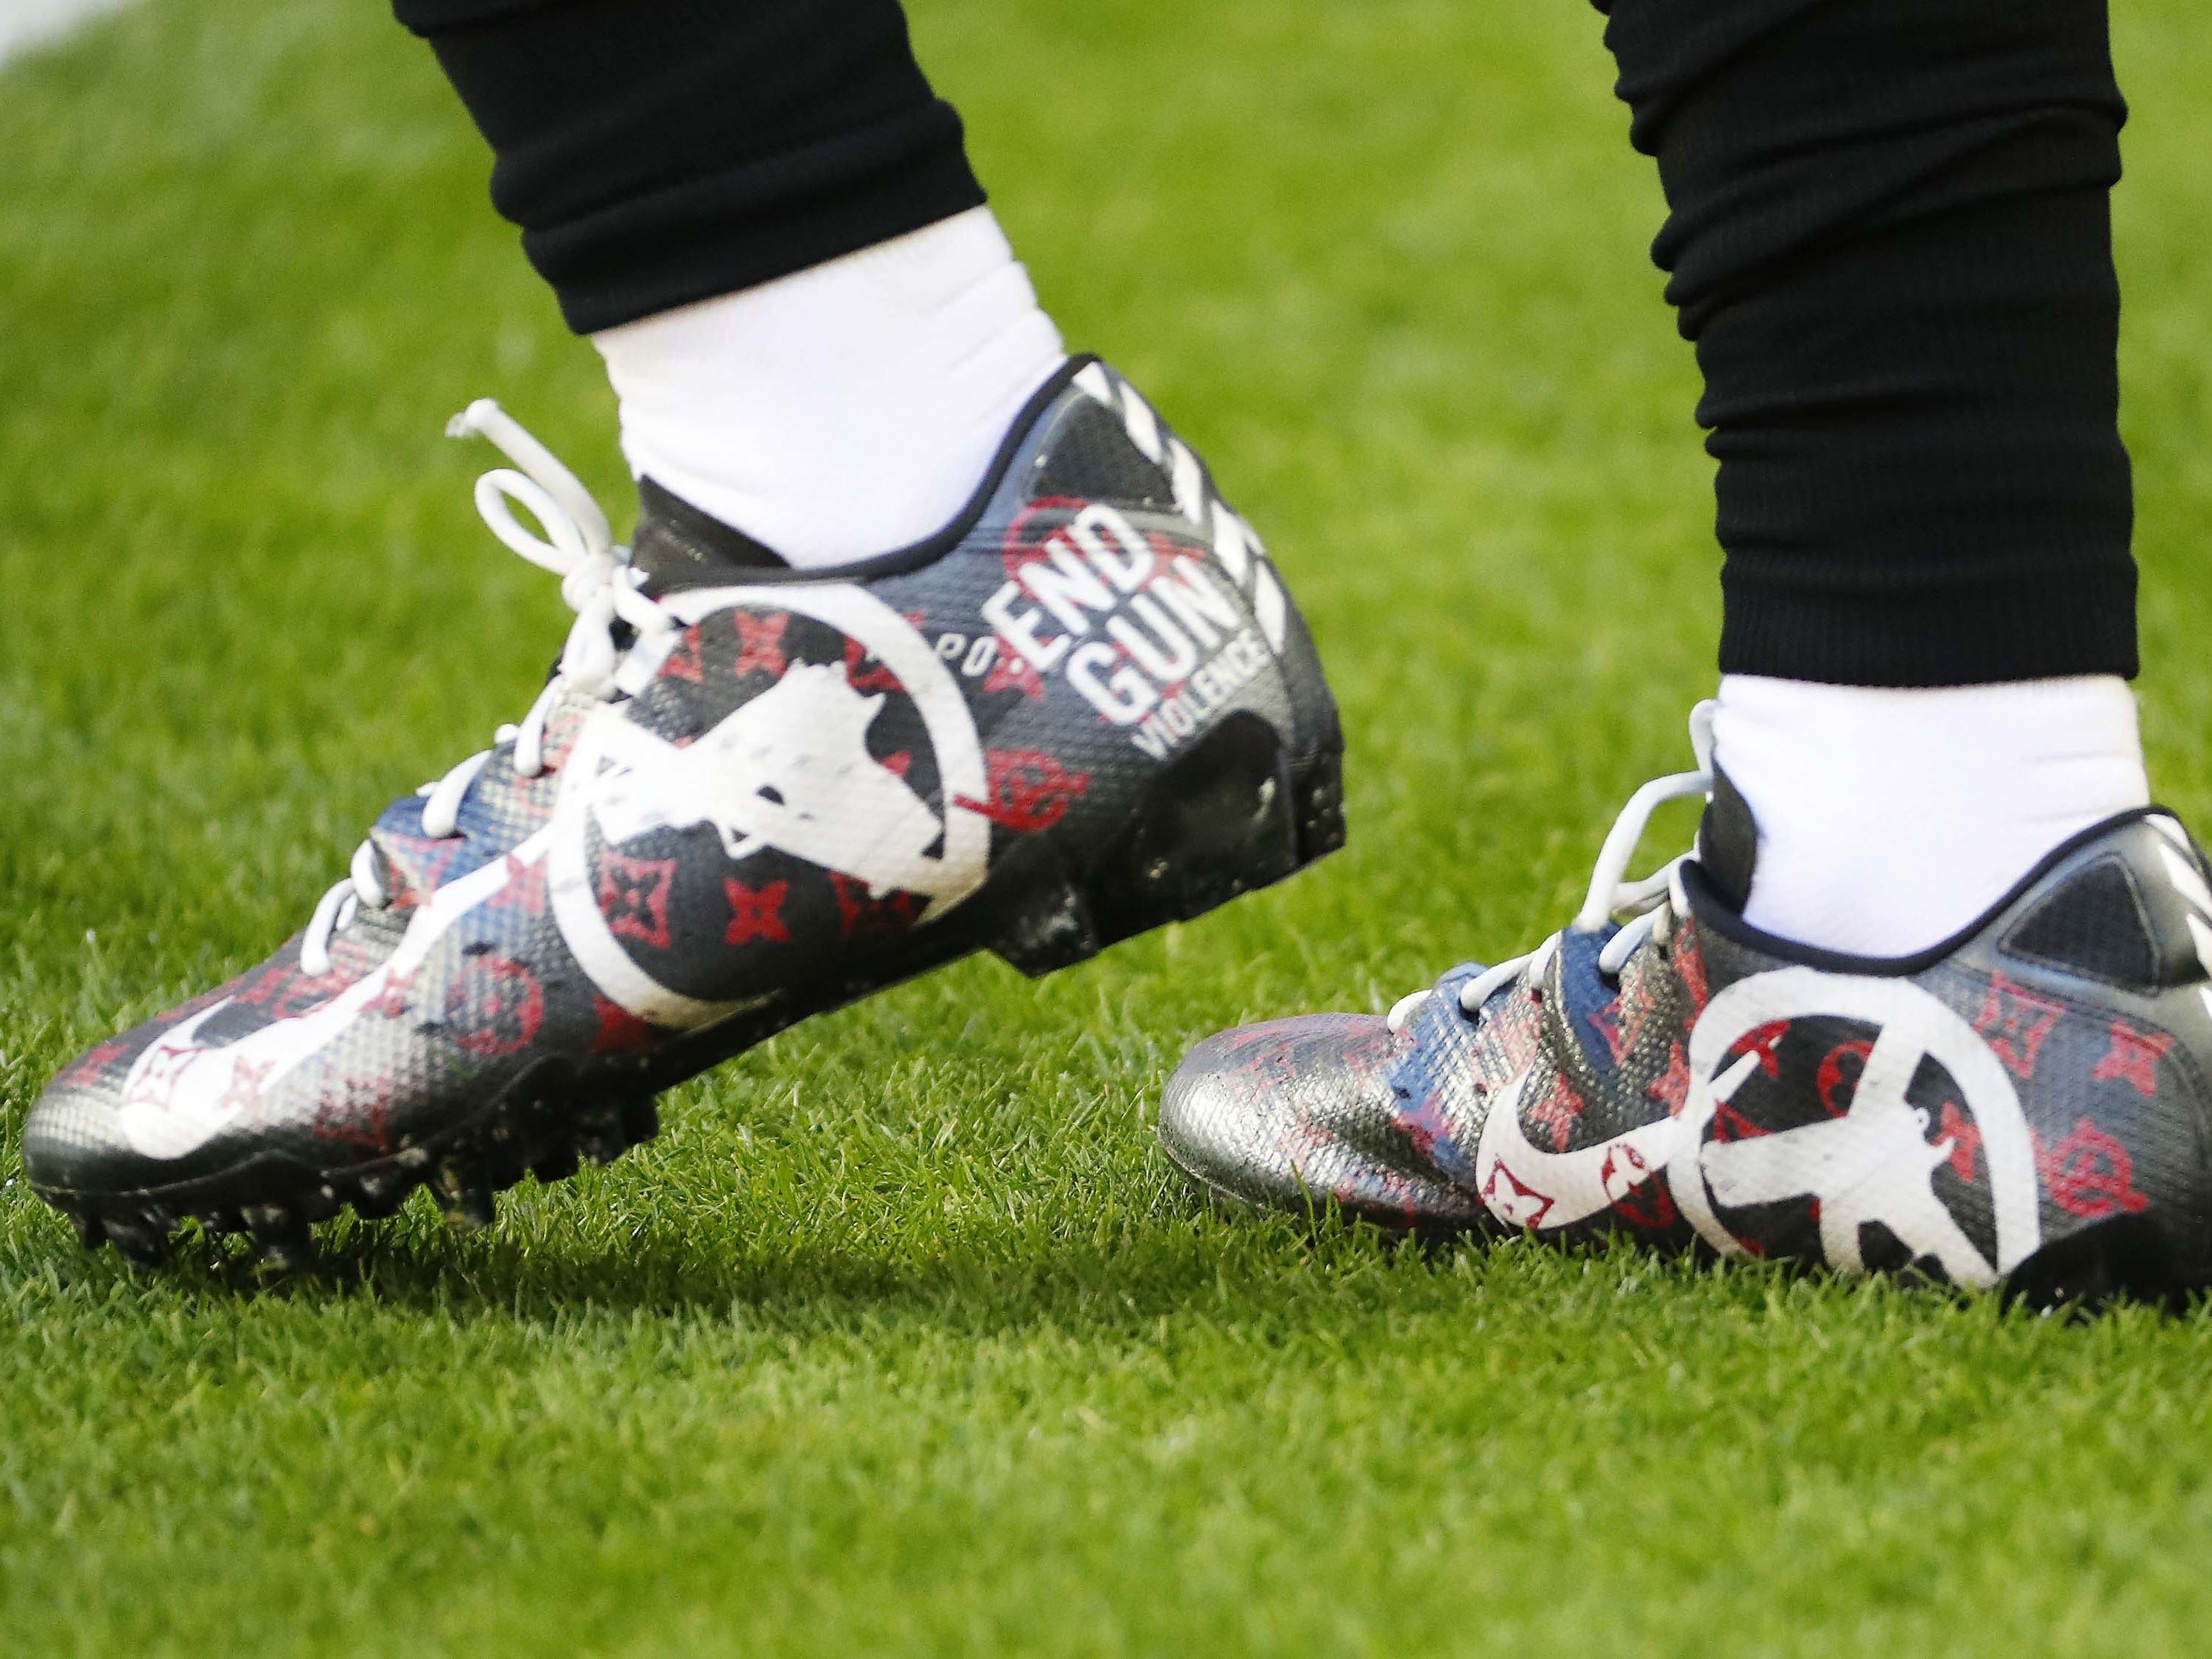 Arizona Cardinals wide receiver Trent Sherfield (16) wears cleats as part of the NFL's My Cause My Cleats campaign before playing against the Detroit Lions December 9.